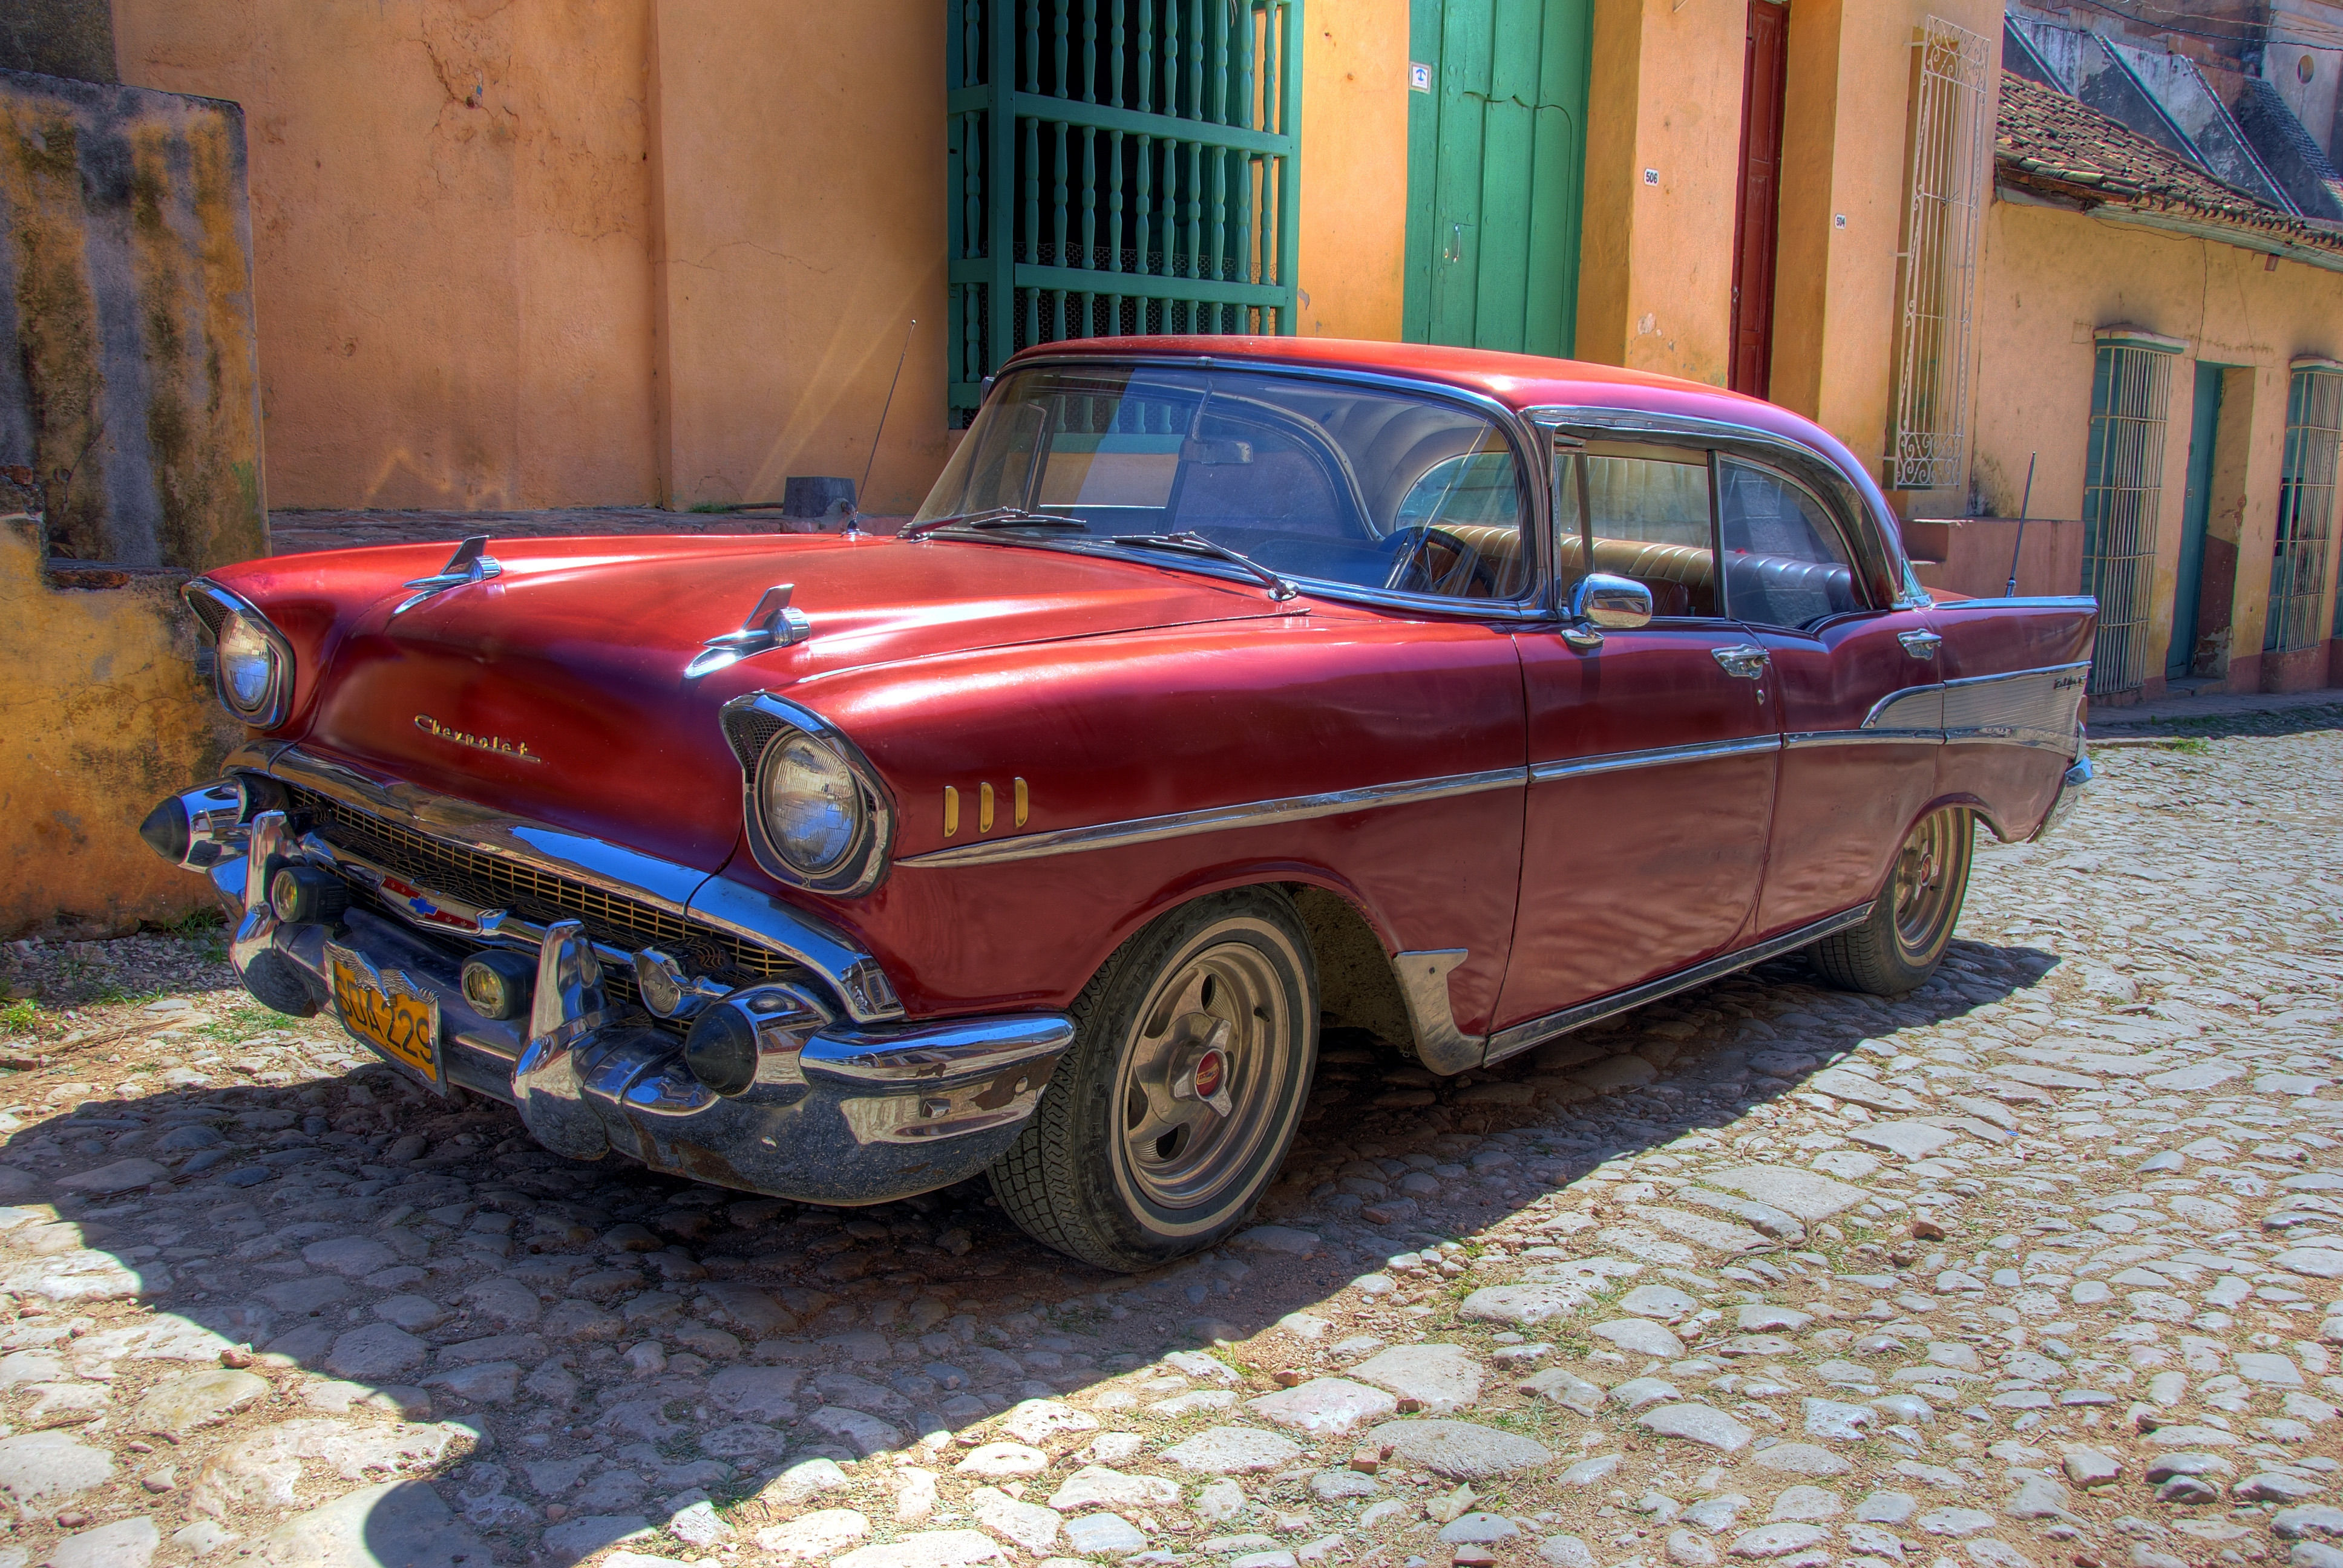 154699 download wallpaper Chevrolet, Cars, Car, Machine, Old, Retro, Cuba, Havana screensavers and pictures for free